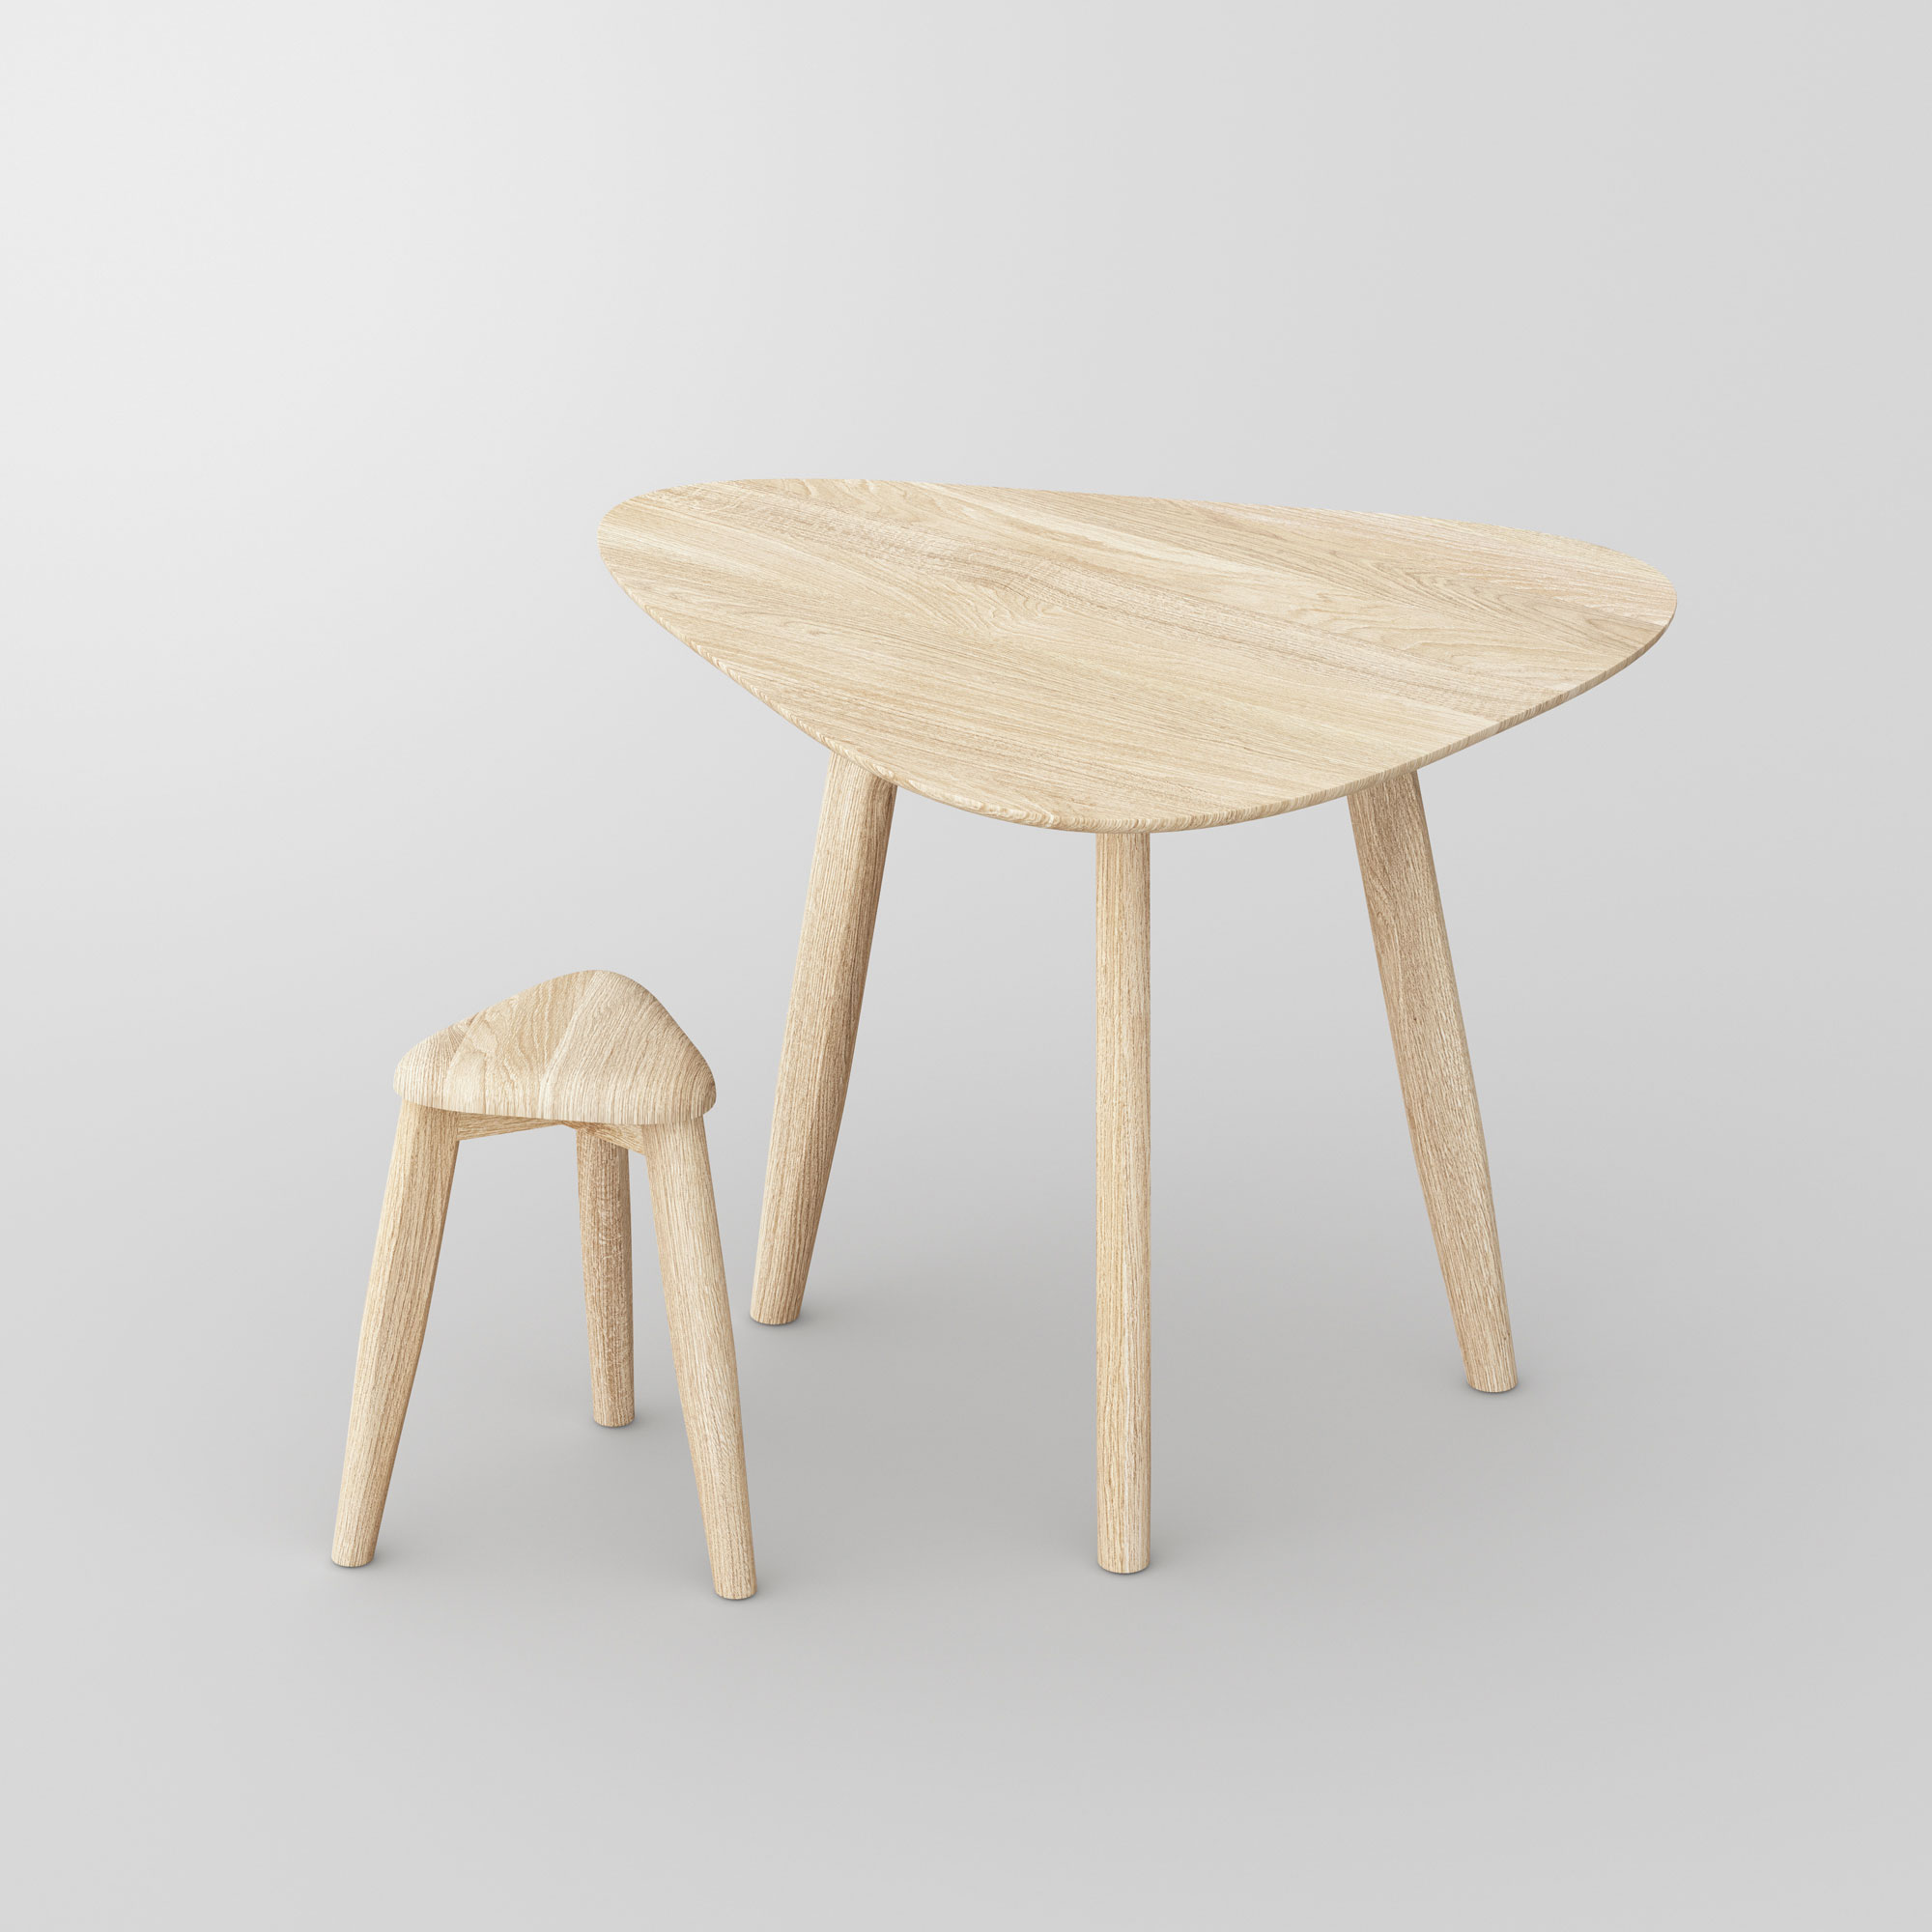 Triangle Wood Stool AETAS SPACE vitamin-design custom made in solid wood by vitamin design